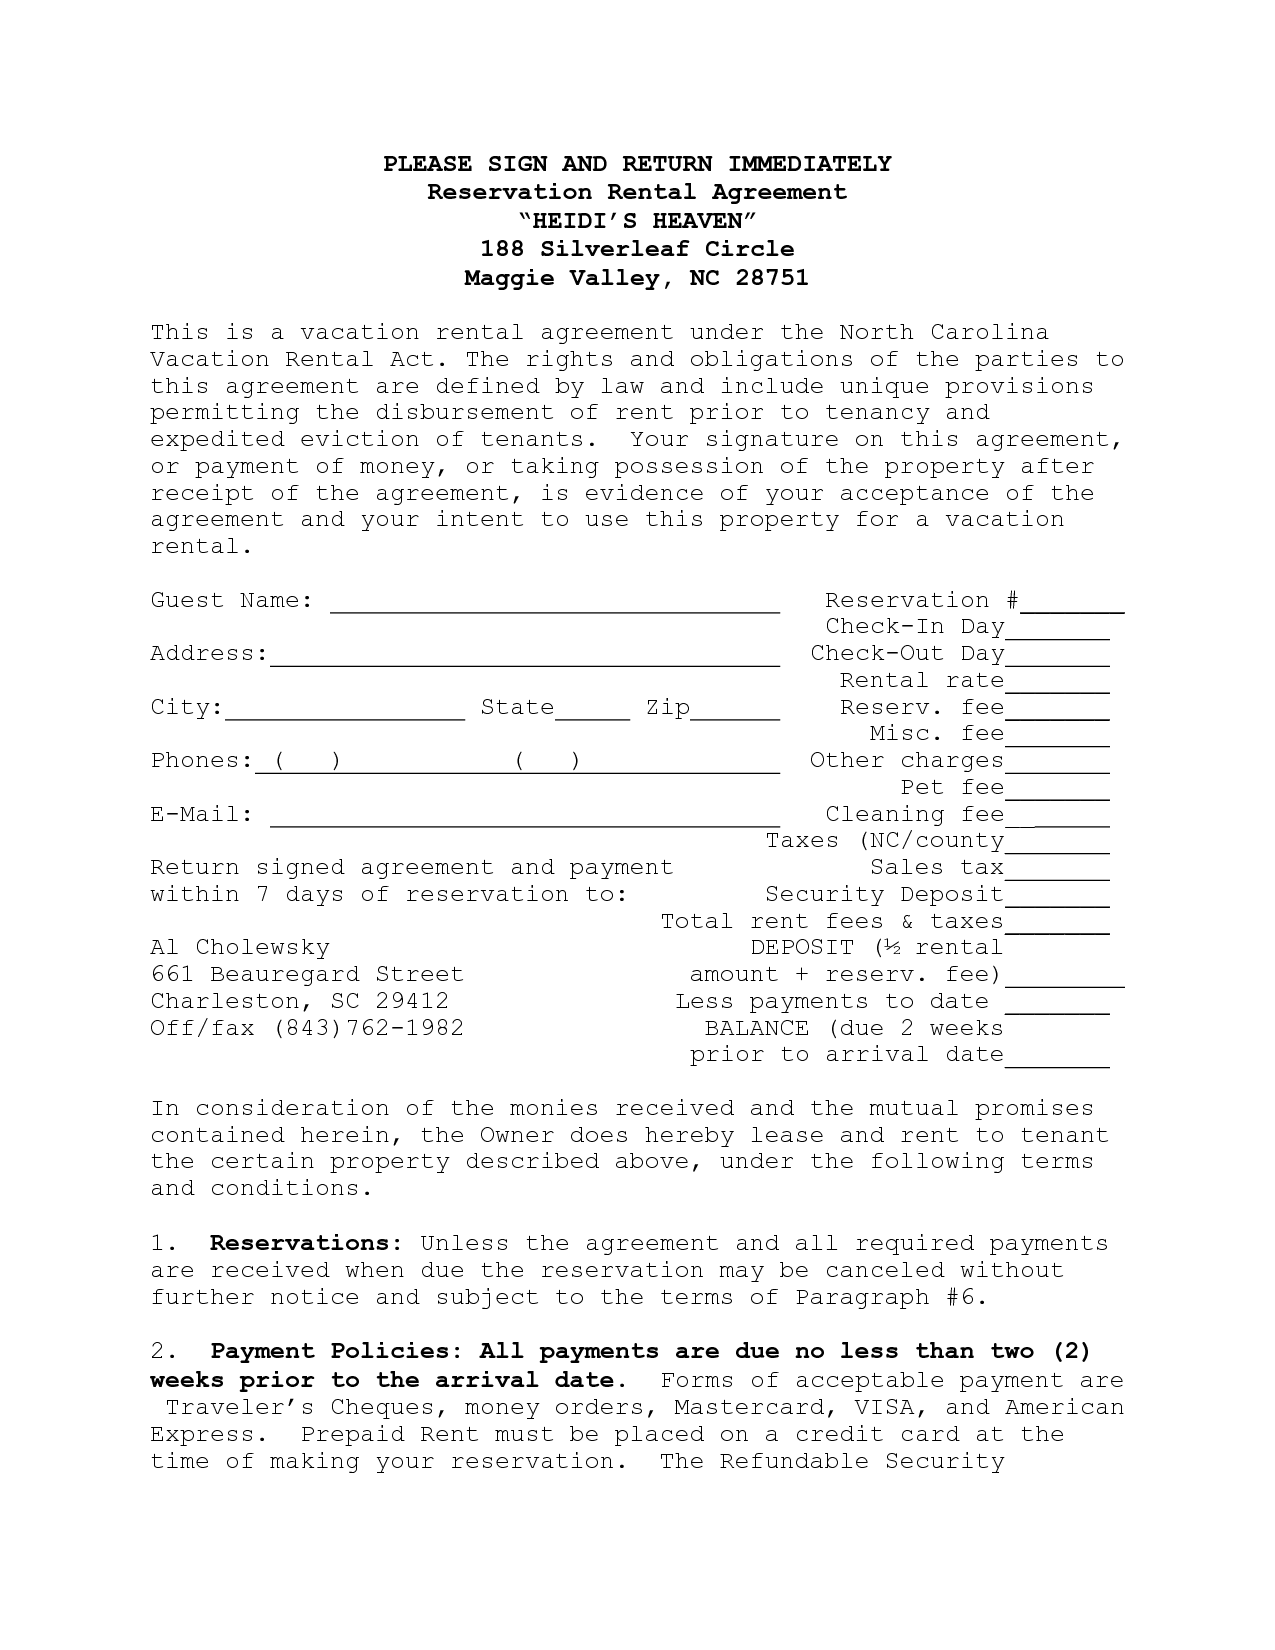 House Lease Agreement Template House Rental Agreement Contract In